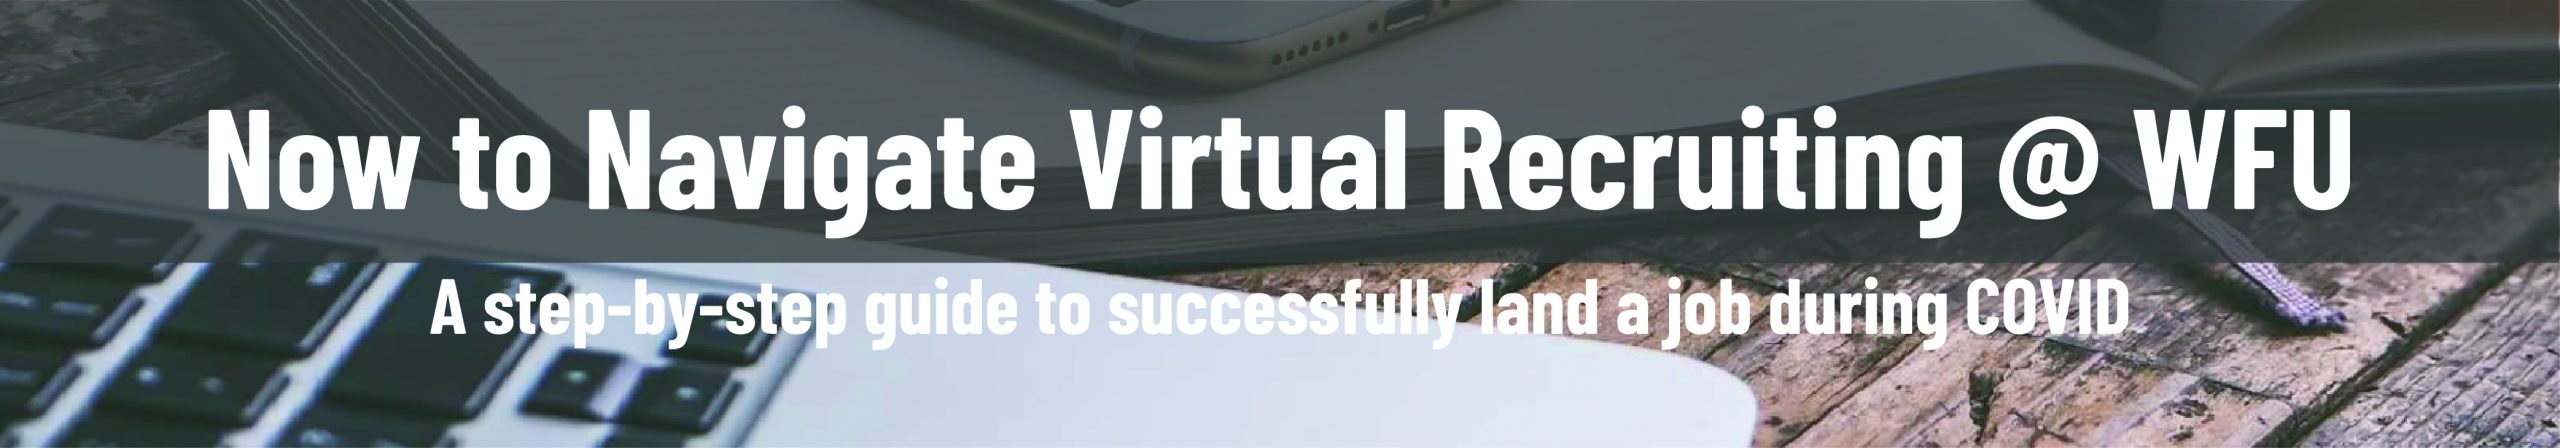 How to navigate virtual recruiting